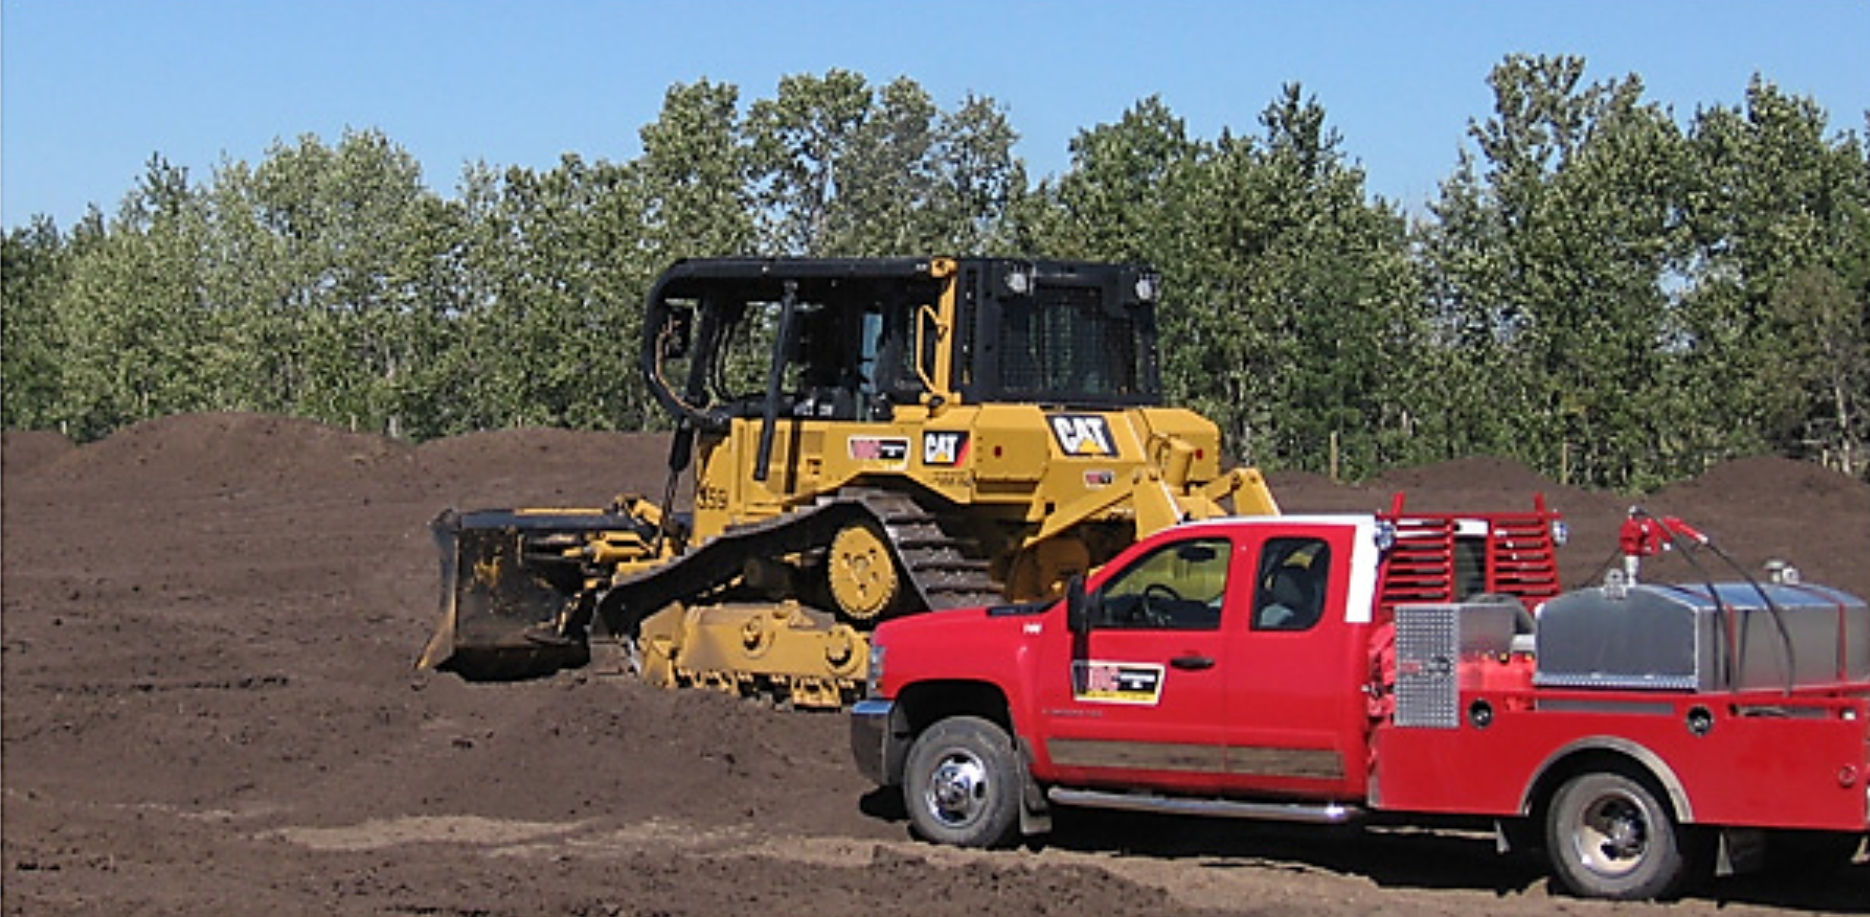 Excavating Contractor in AB Airdrie T4A 2J1 D B C Contractors Ltd 725 East Lake Rise NE  (403)948-5991